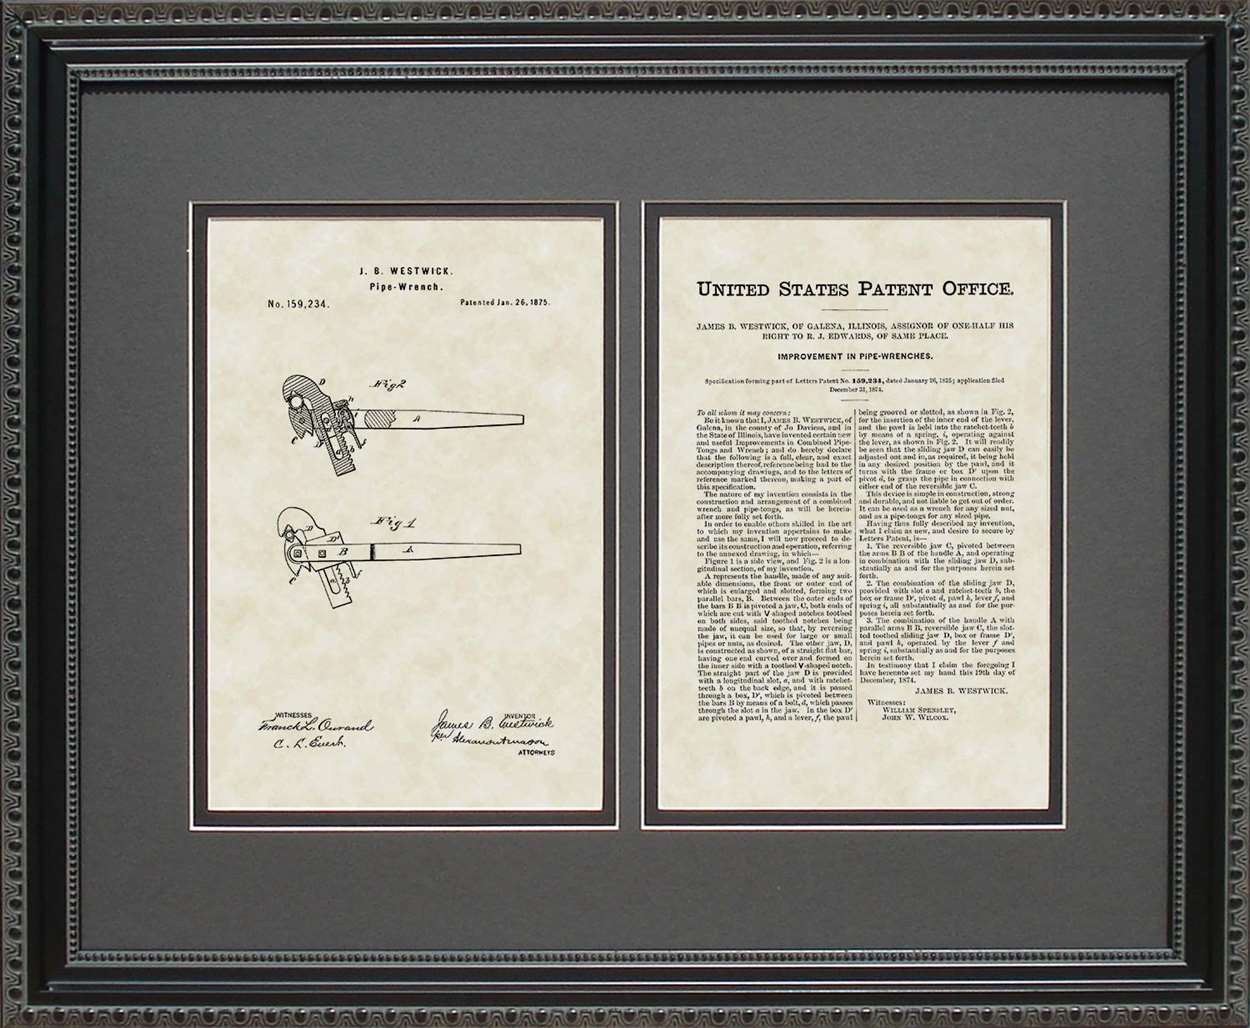 Pipe Wrench Patent, Art & Copy, Westwick, 1875, 16x20